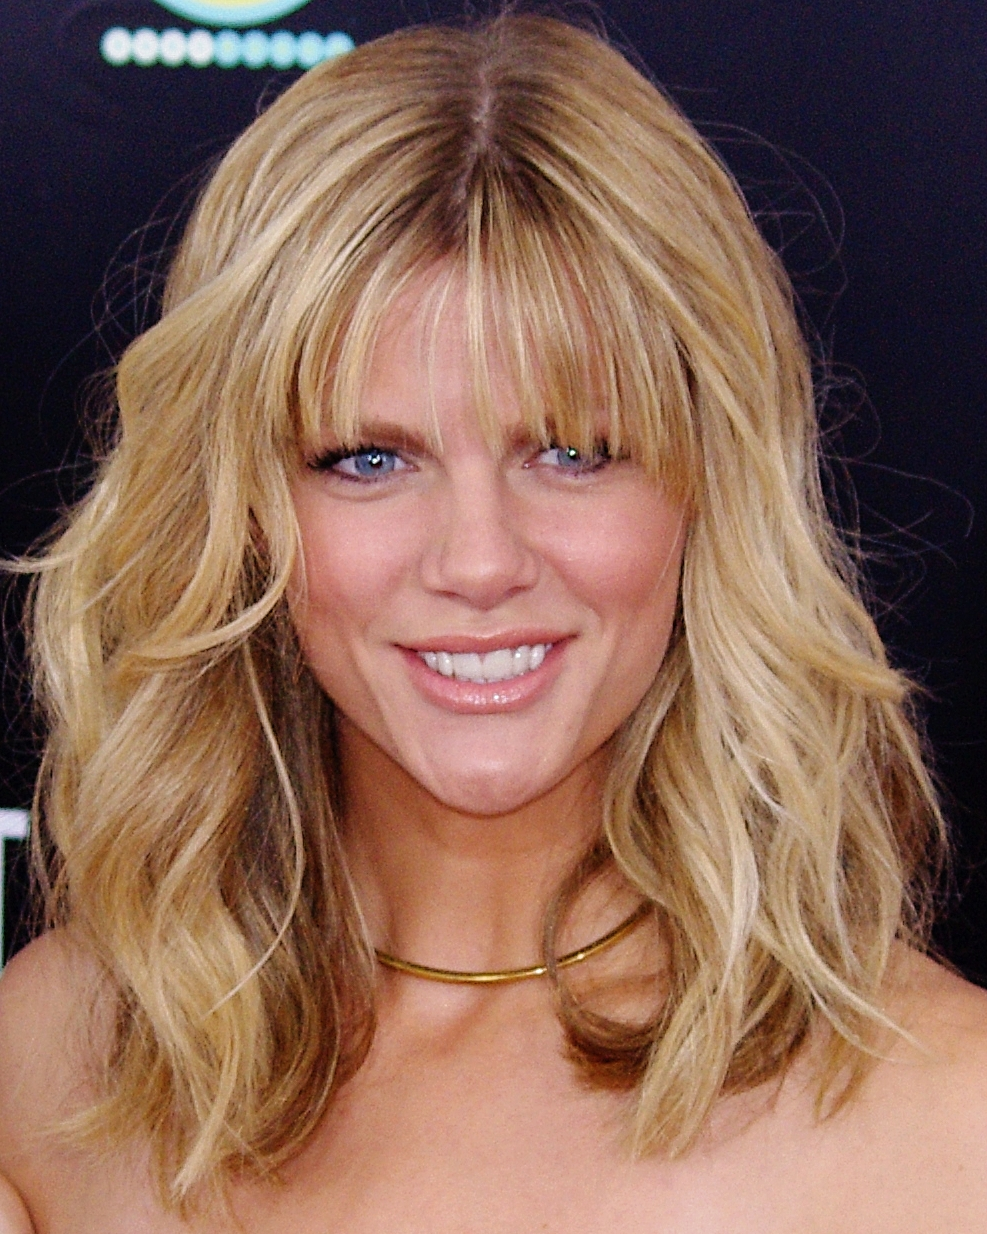 Brooklyn Decker 2012